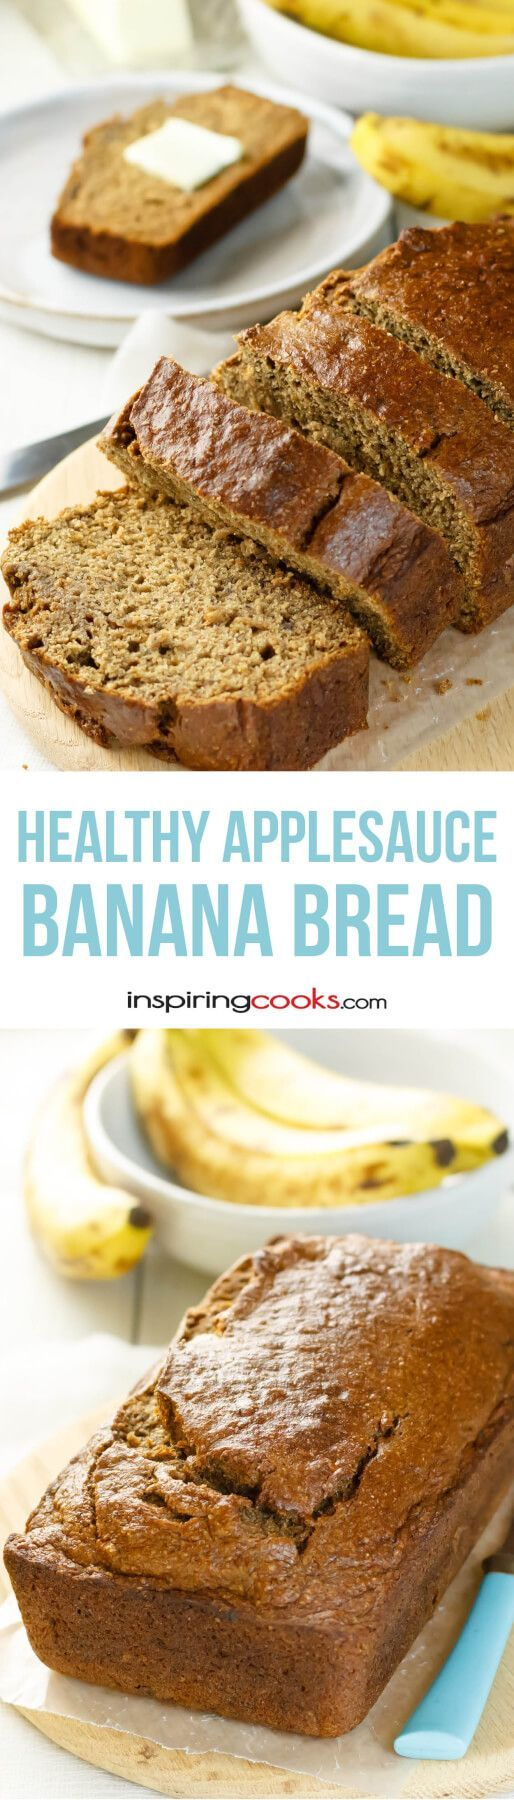 This banana bread with applesauce recipe was so easy - I can't wait to buy more bananas!